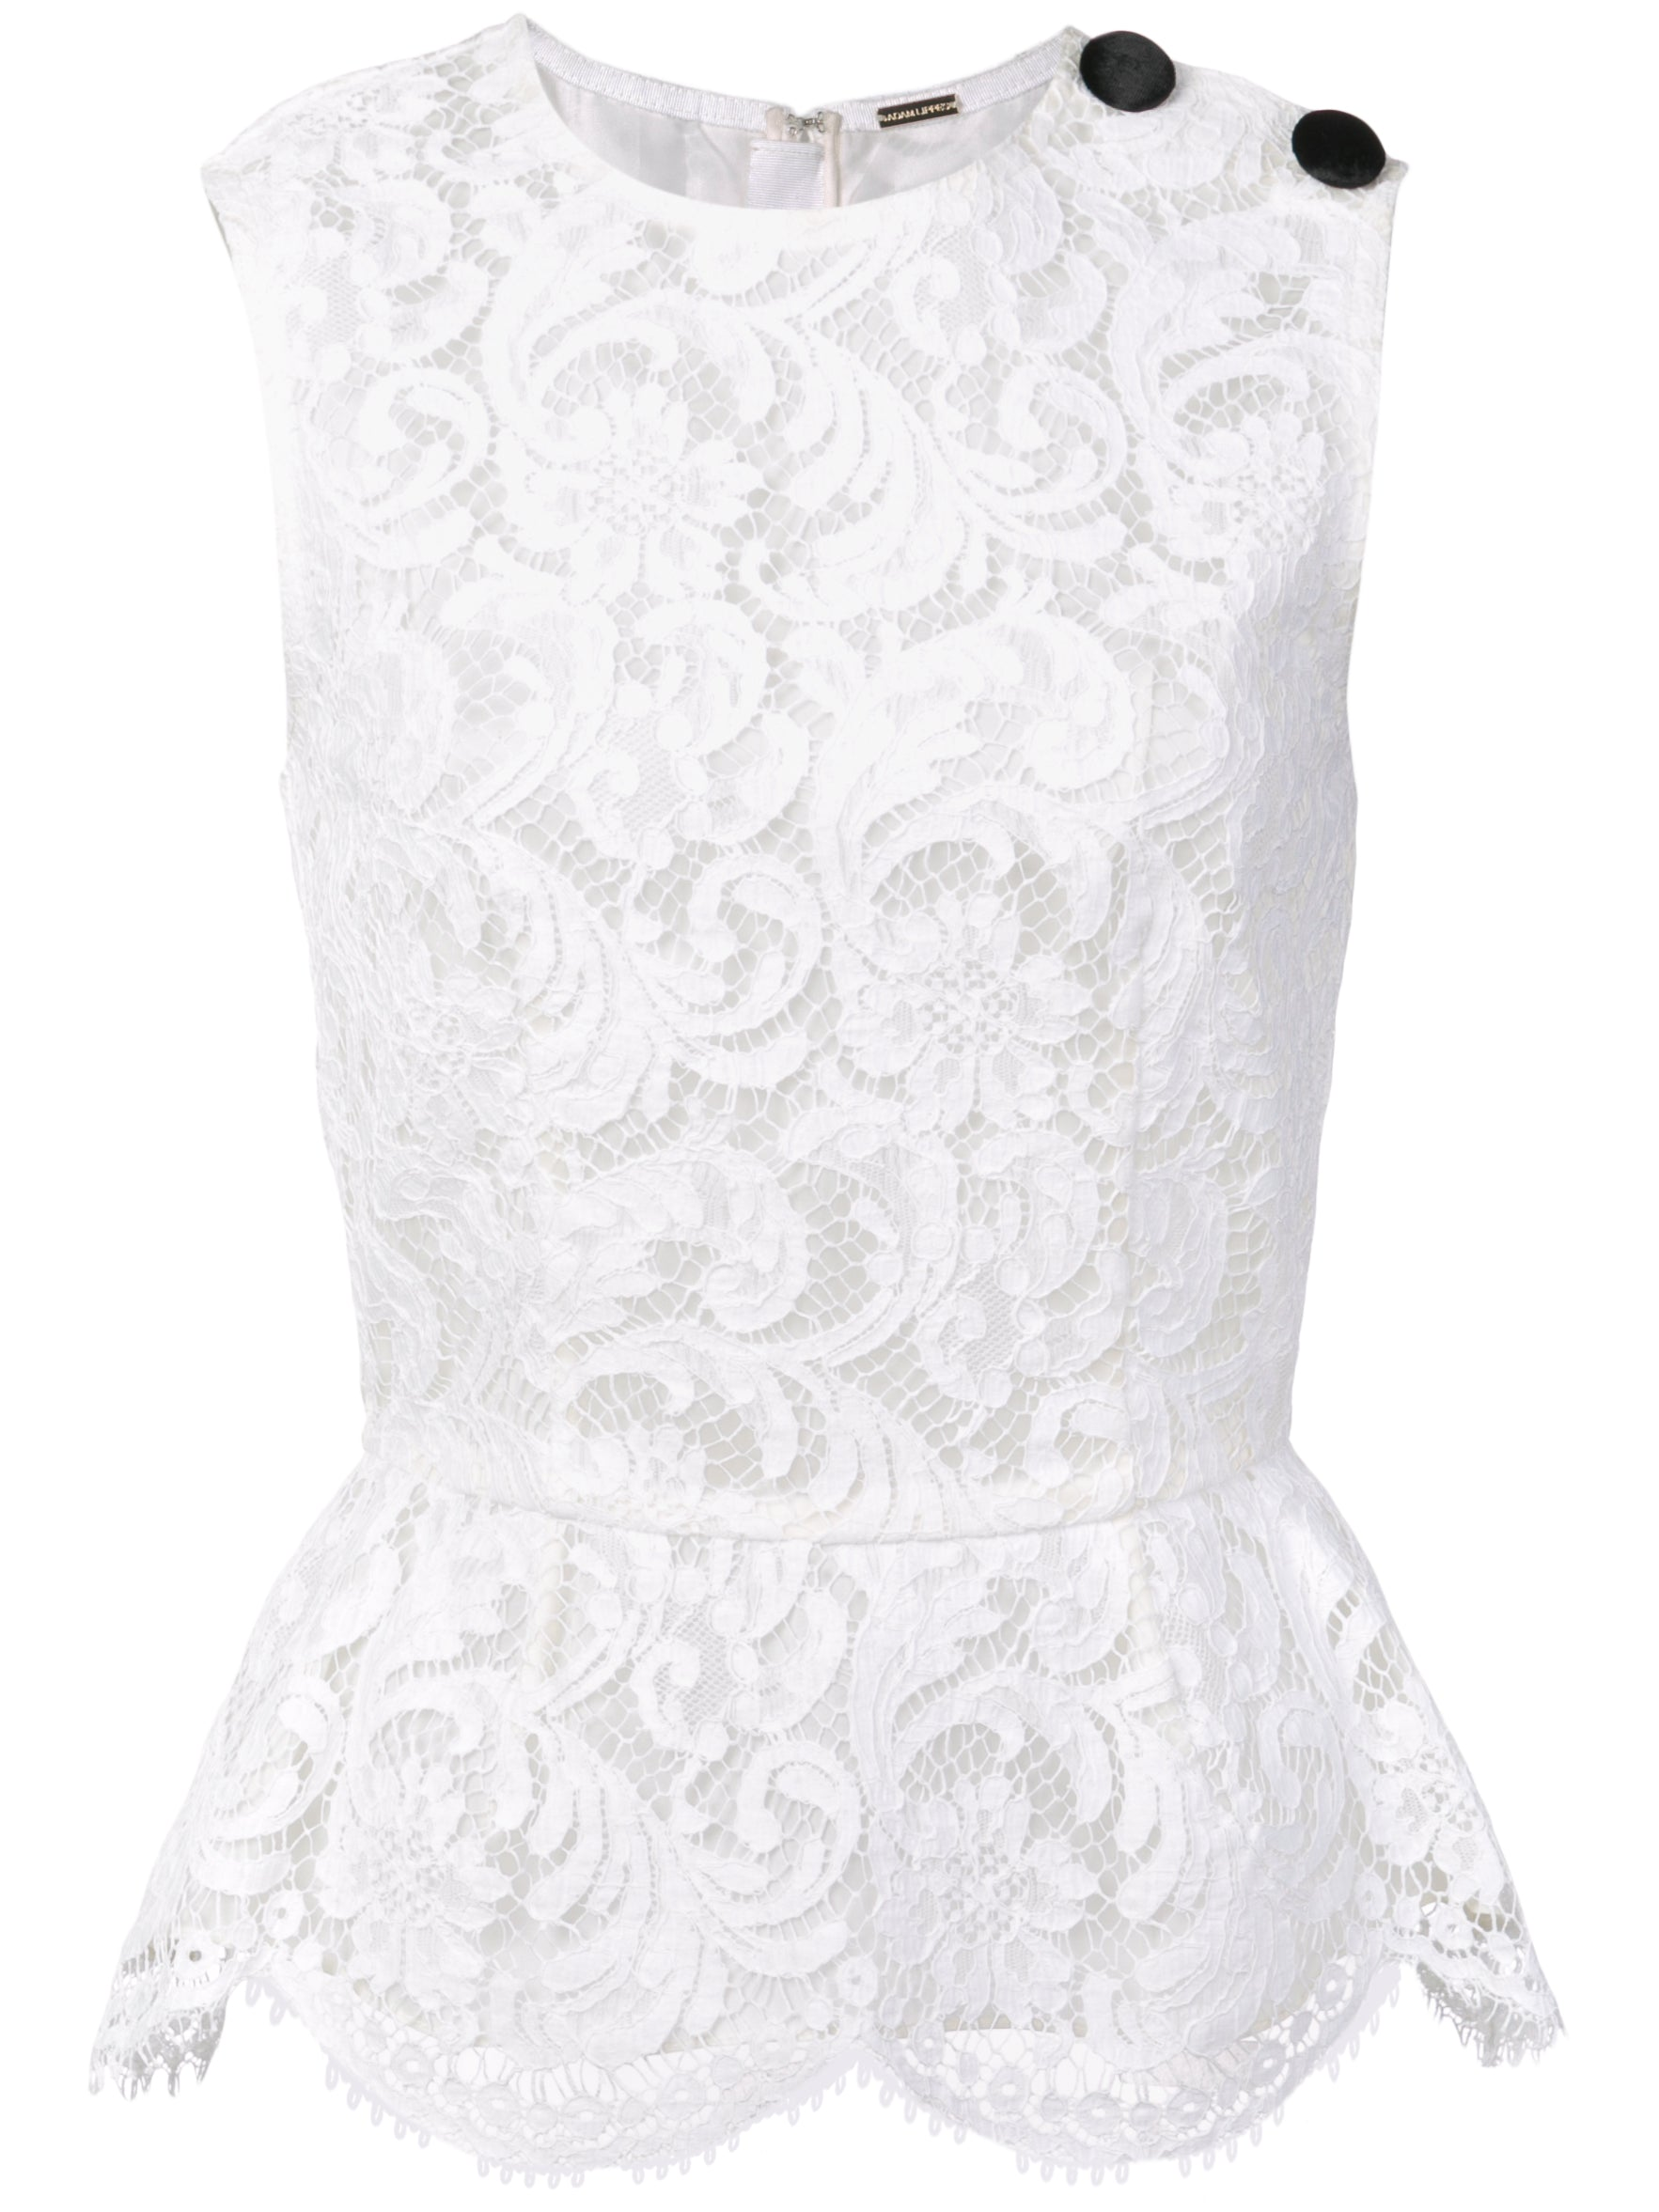 CORDED LACE PEPLUM TOP